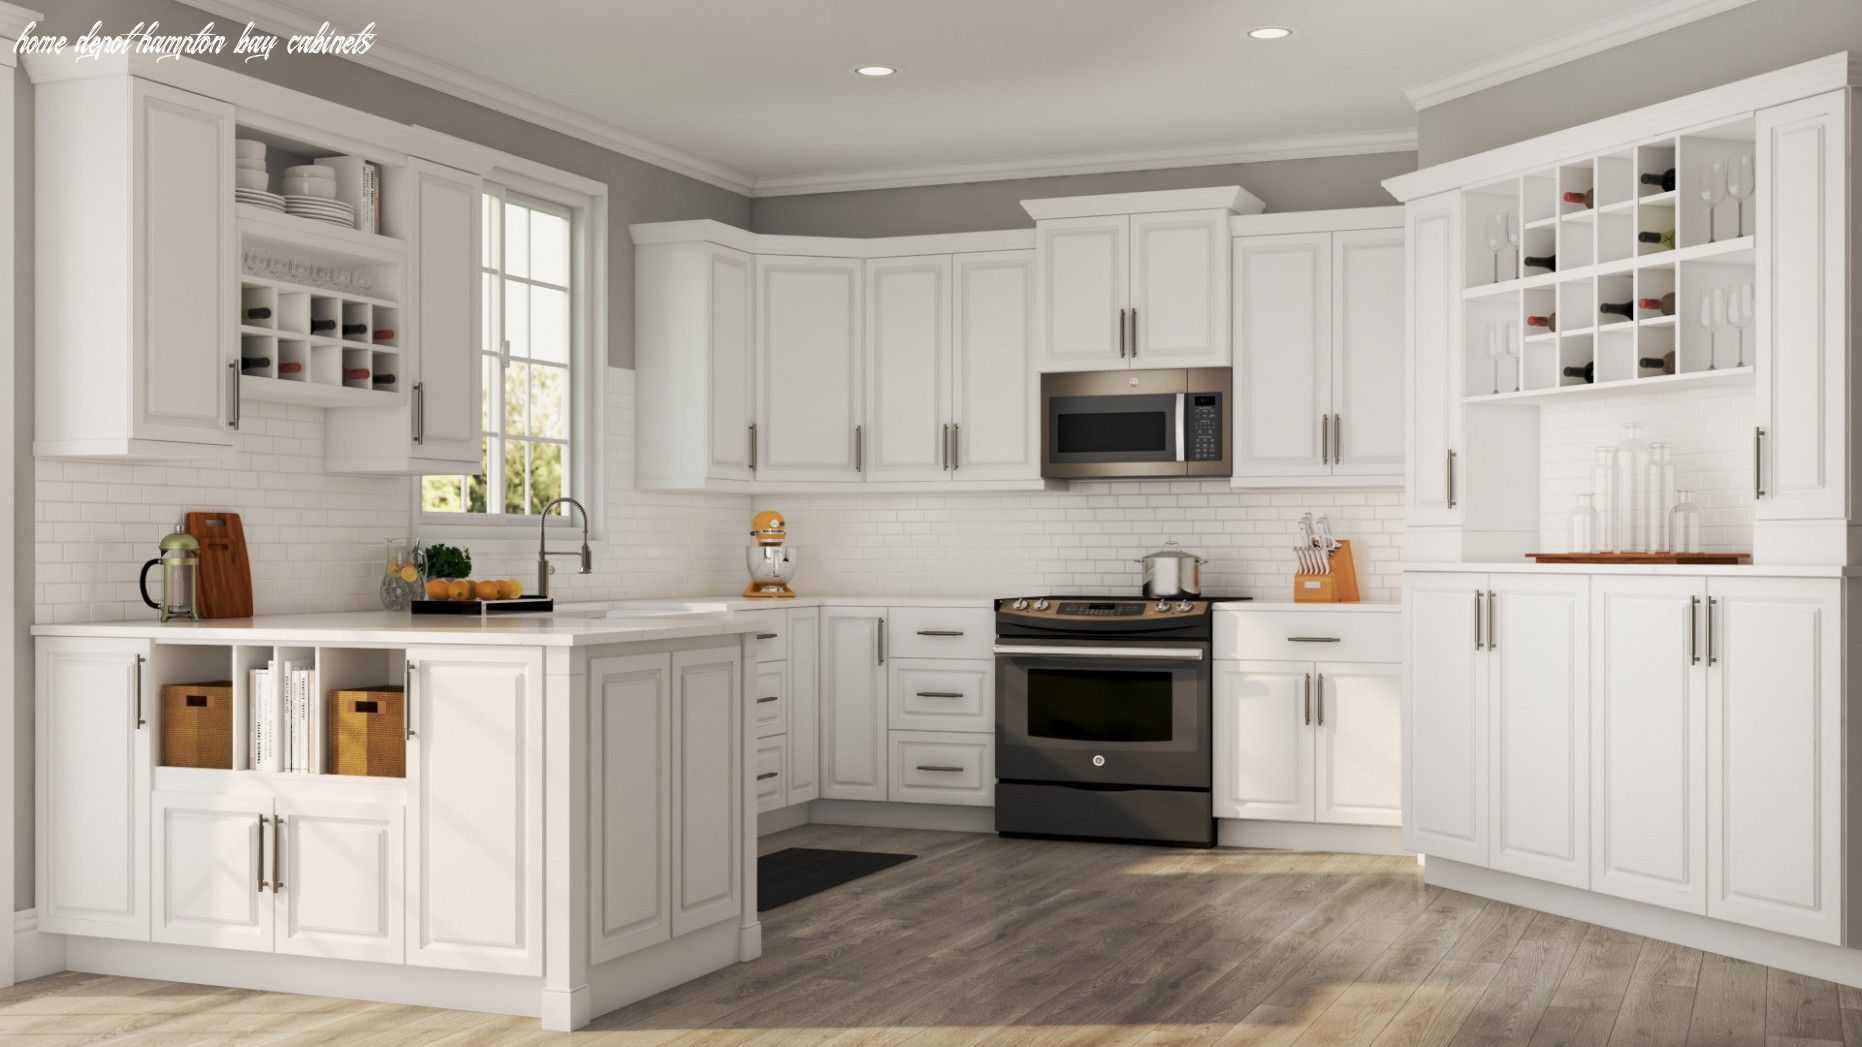 Hampton Wall Cabinets In White Kitchen The Home Depot Home Depot Hampton Bay Cabinets In 2020 New Kitchen Cabinets Custom Kitchen Cabinets Kitchen Cabinet Remodel